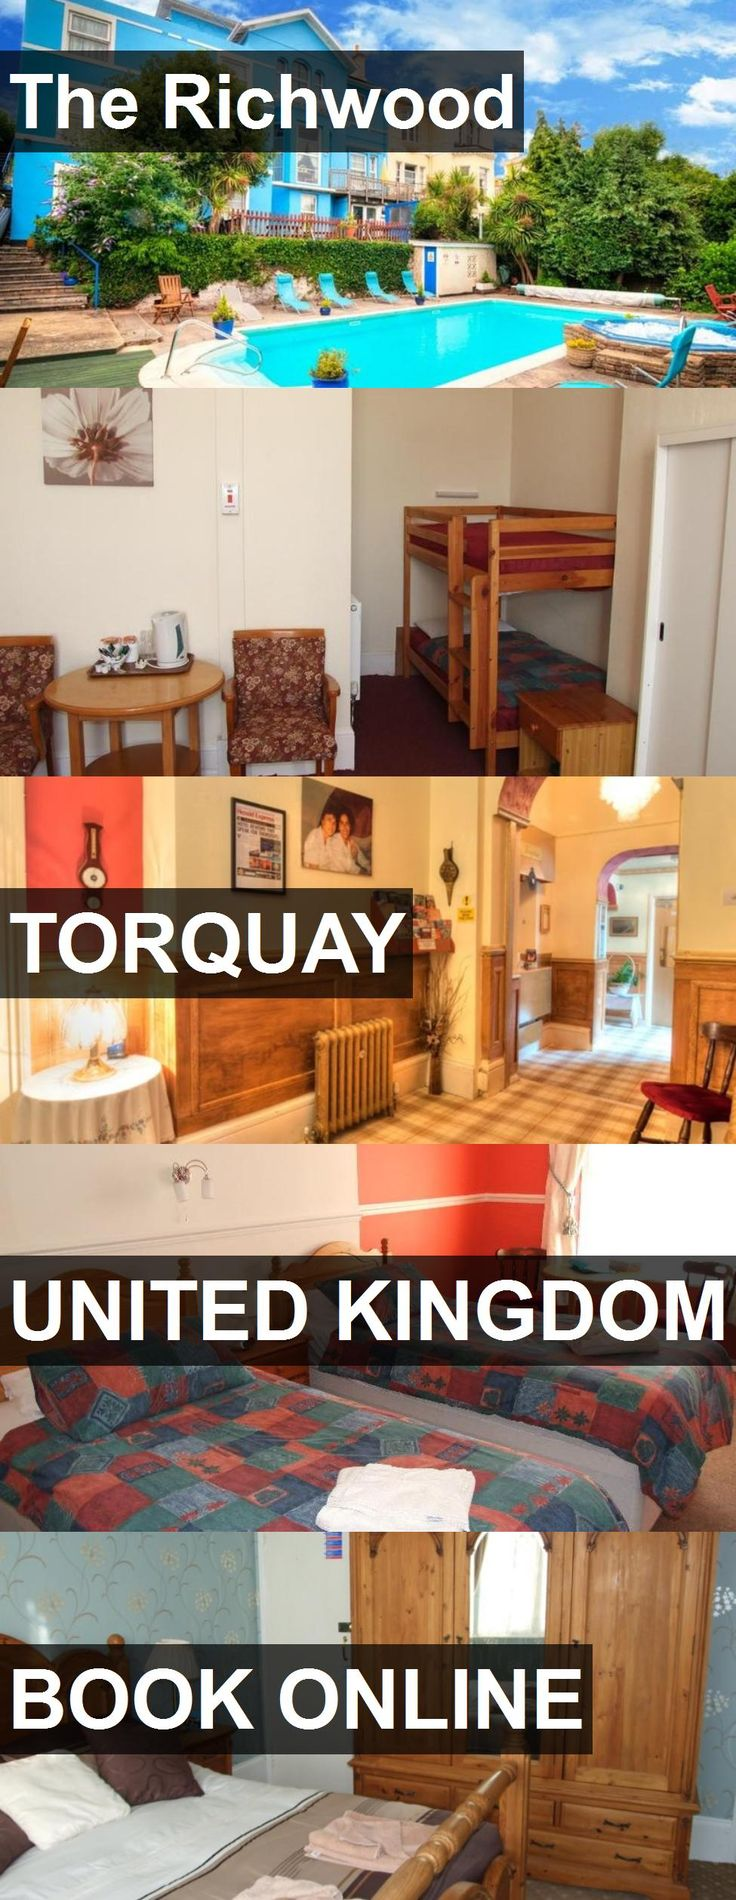 Hotel The Richwood in Torquay, United Kingdom. For more information, photos, reviews and best prices please follow the link. #UnitedKingdom #Torquay #travel #vacation #hotel